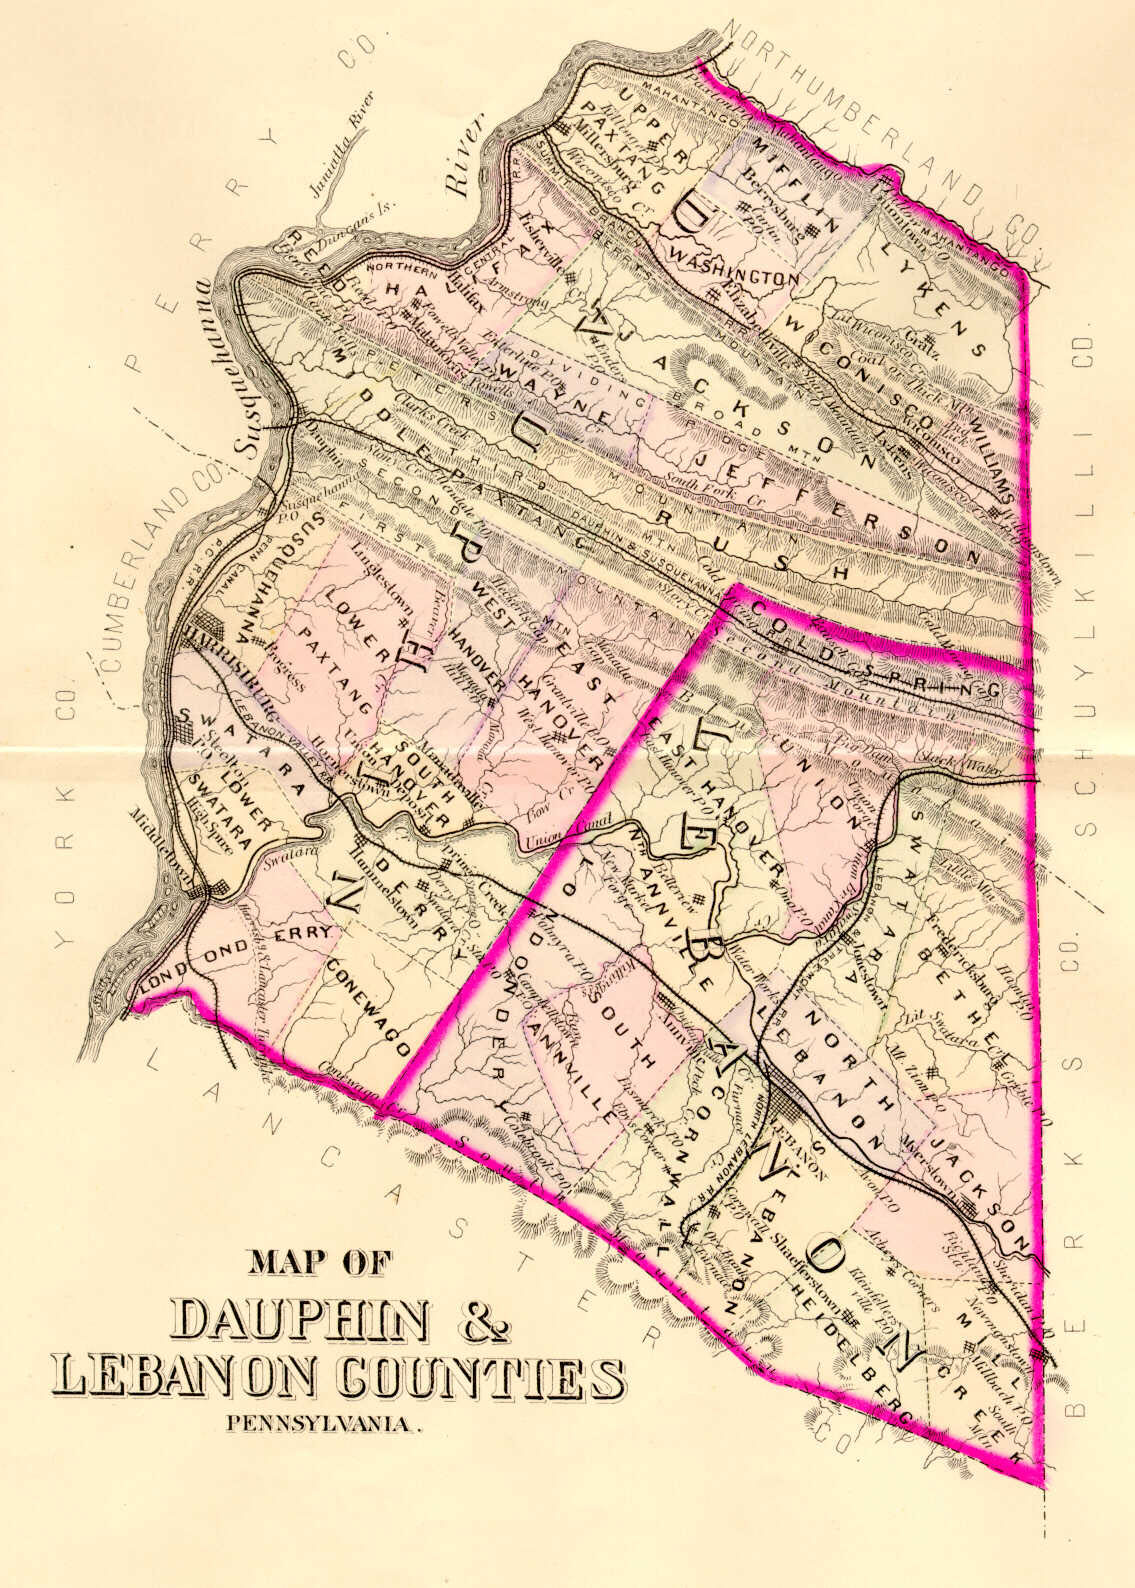 Dauphin and Lebanon Counties, 1883